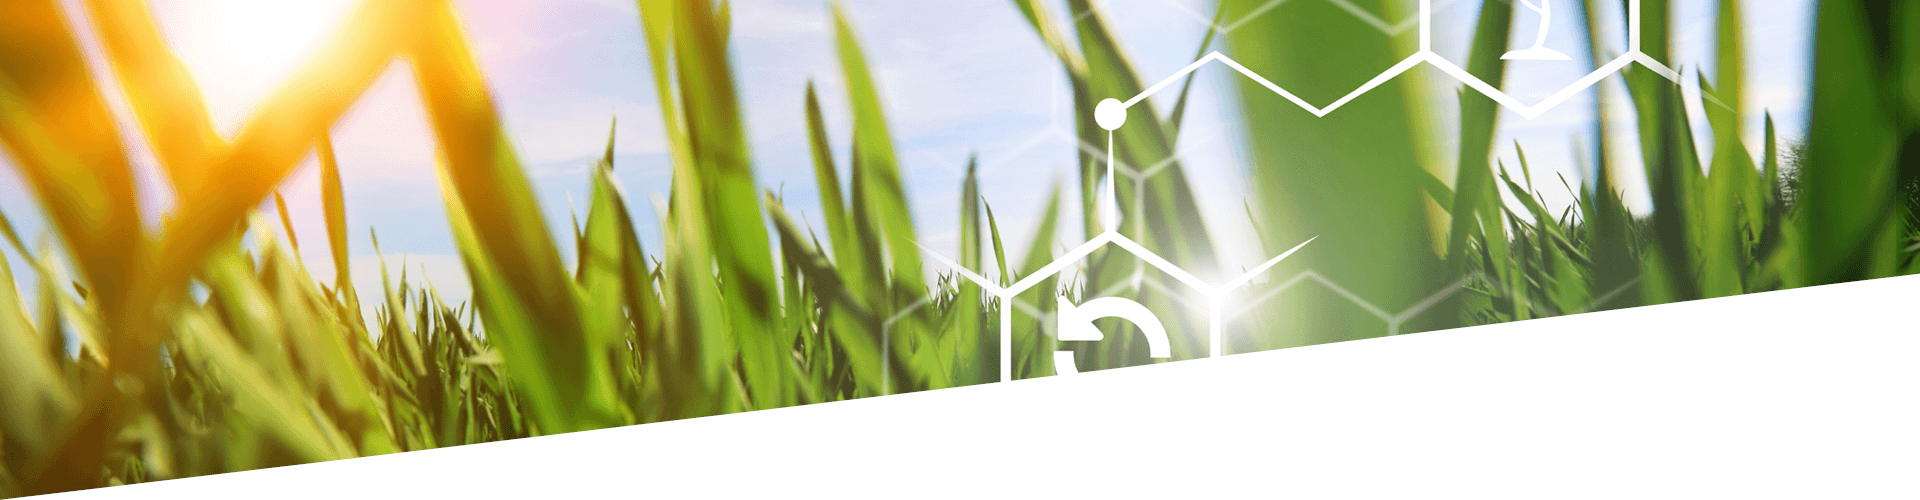 Sectors Agribusiness Banner_1920500 (1)